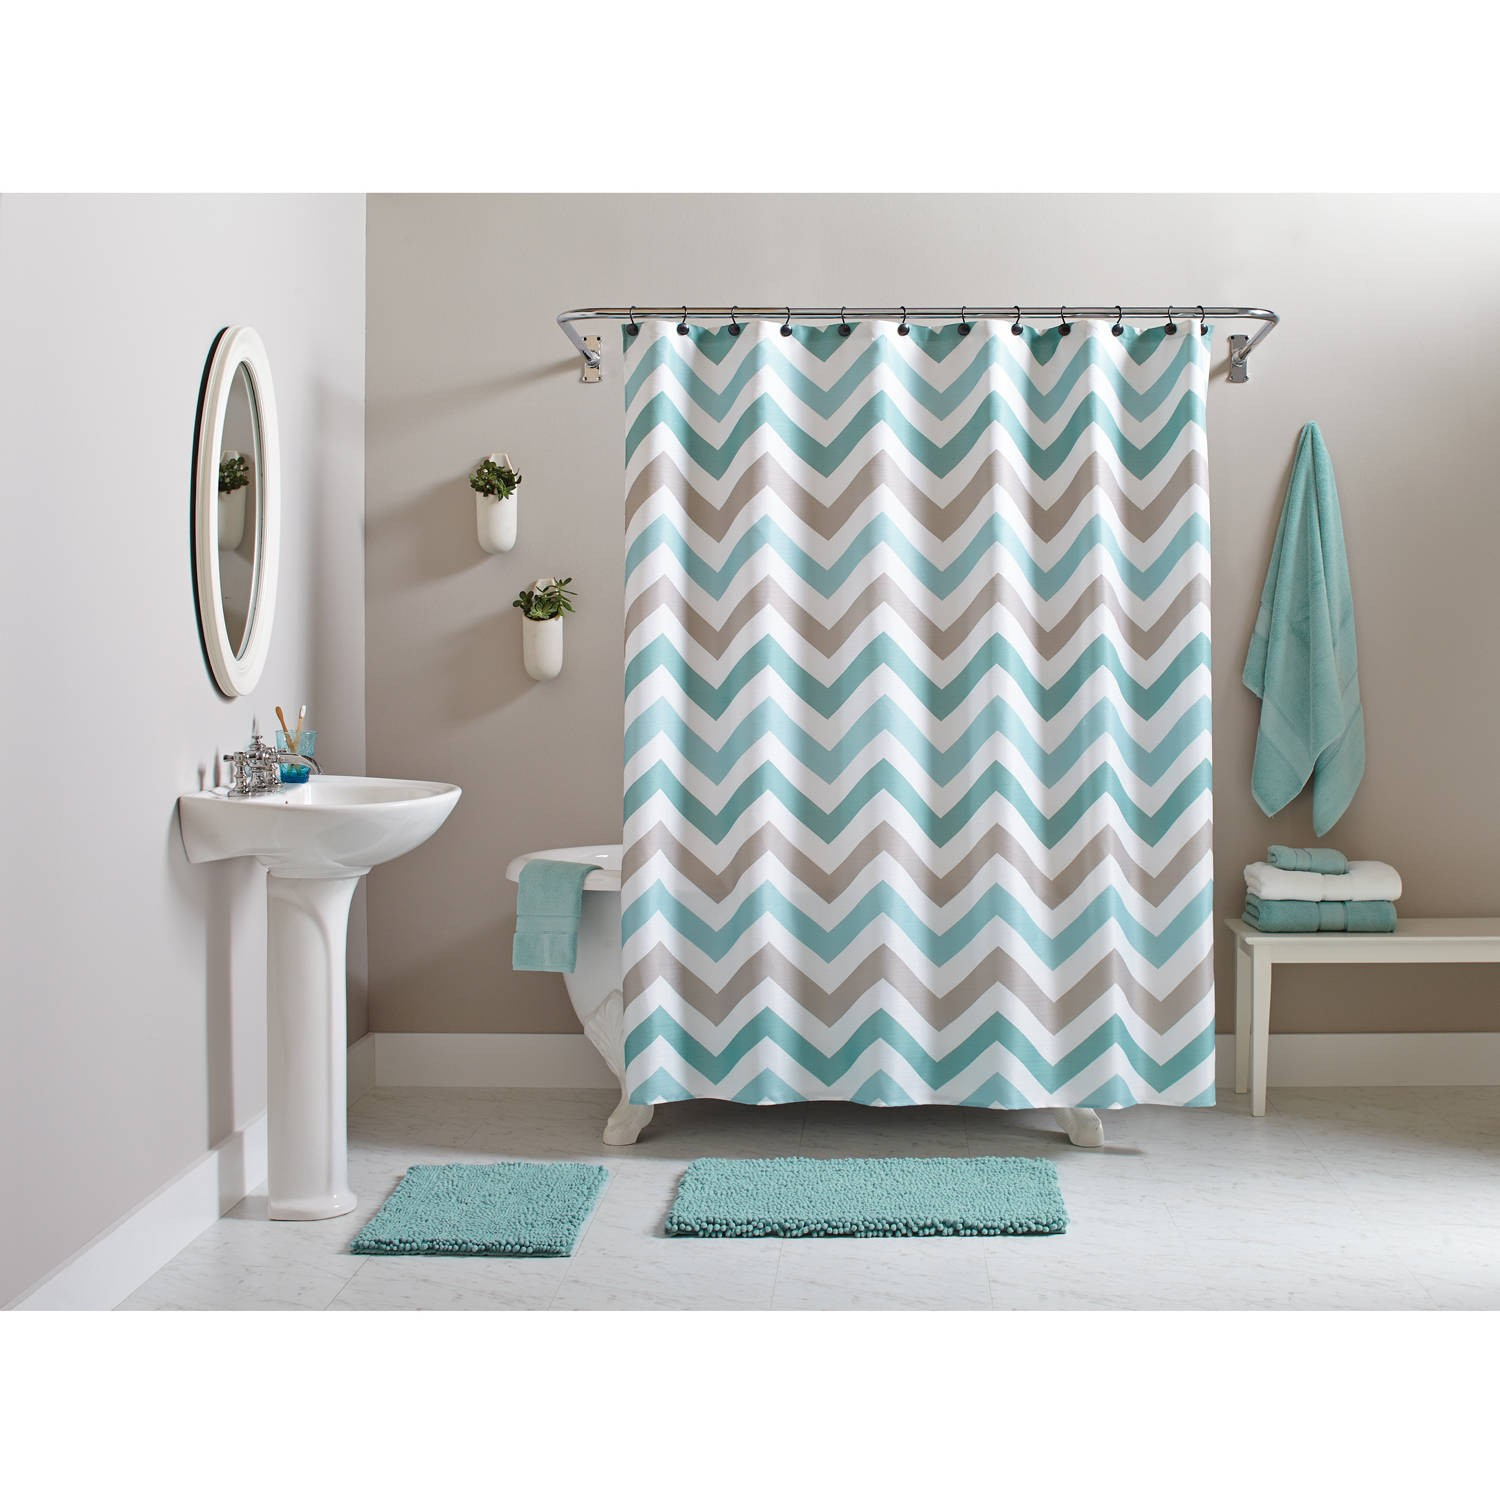 Cute Walmart Bathroom Accessories Design